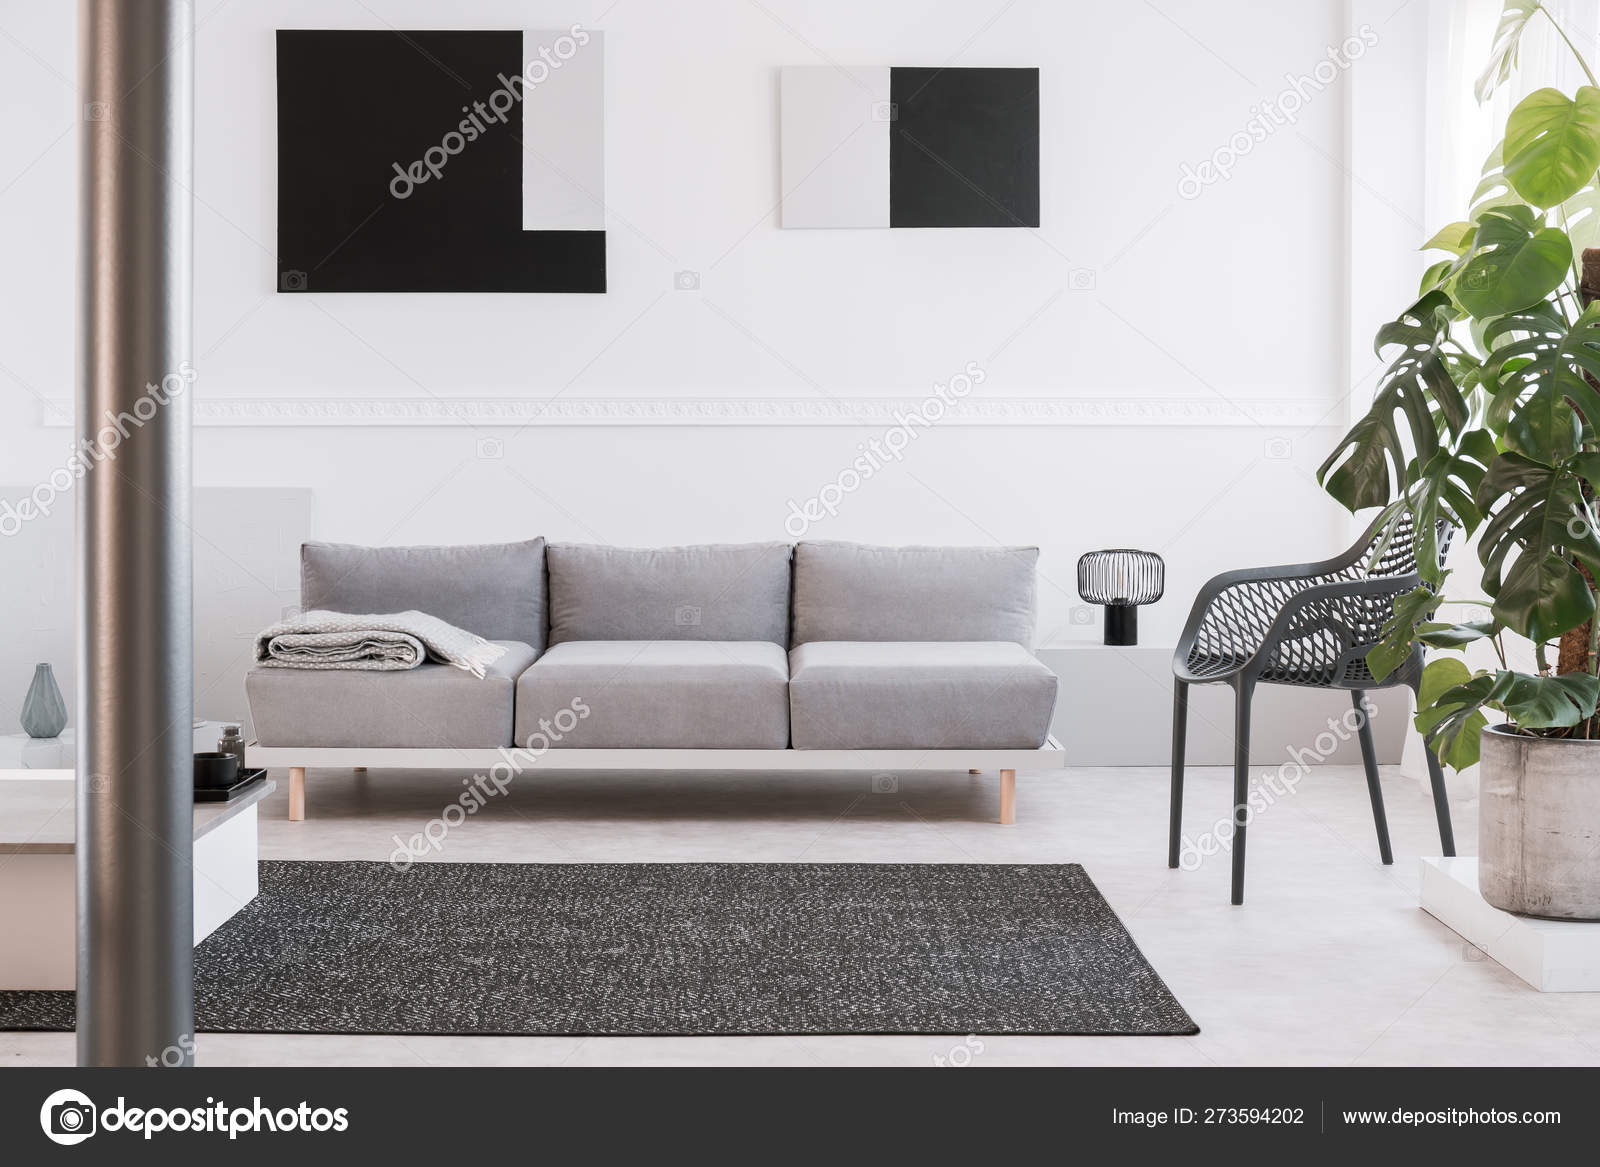 Sensational Fancy Grey Metal Chair Next To Comfortable Couch In Bright Inzonedesignstudio Interior Chair Design Inzonedesignstudiocom